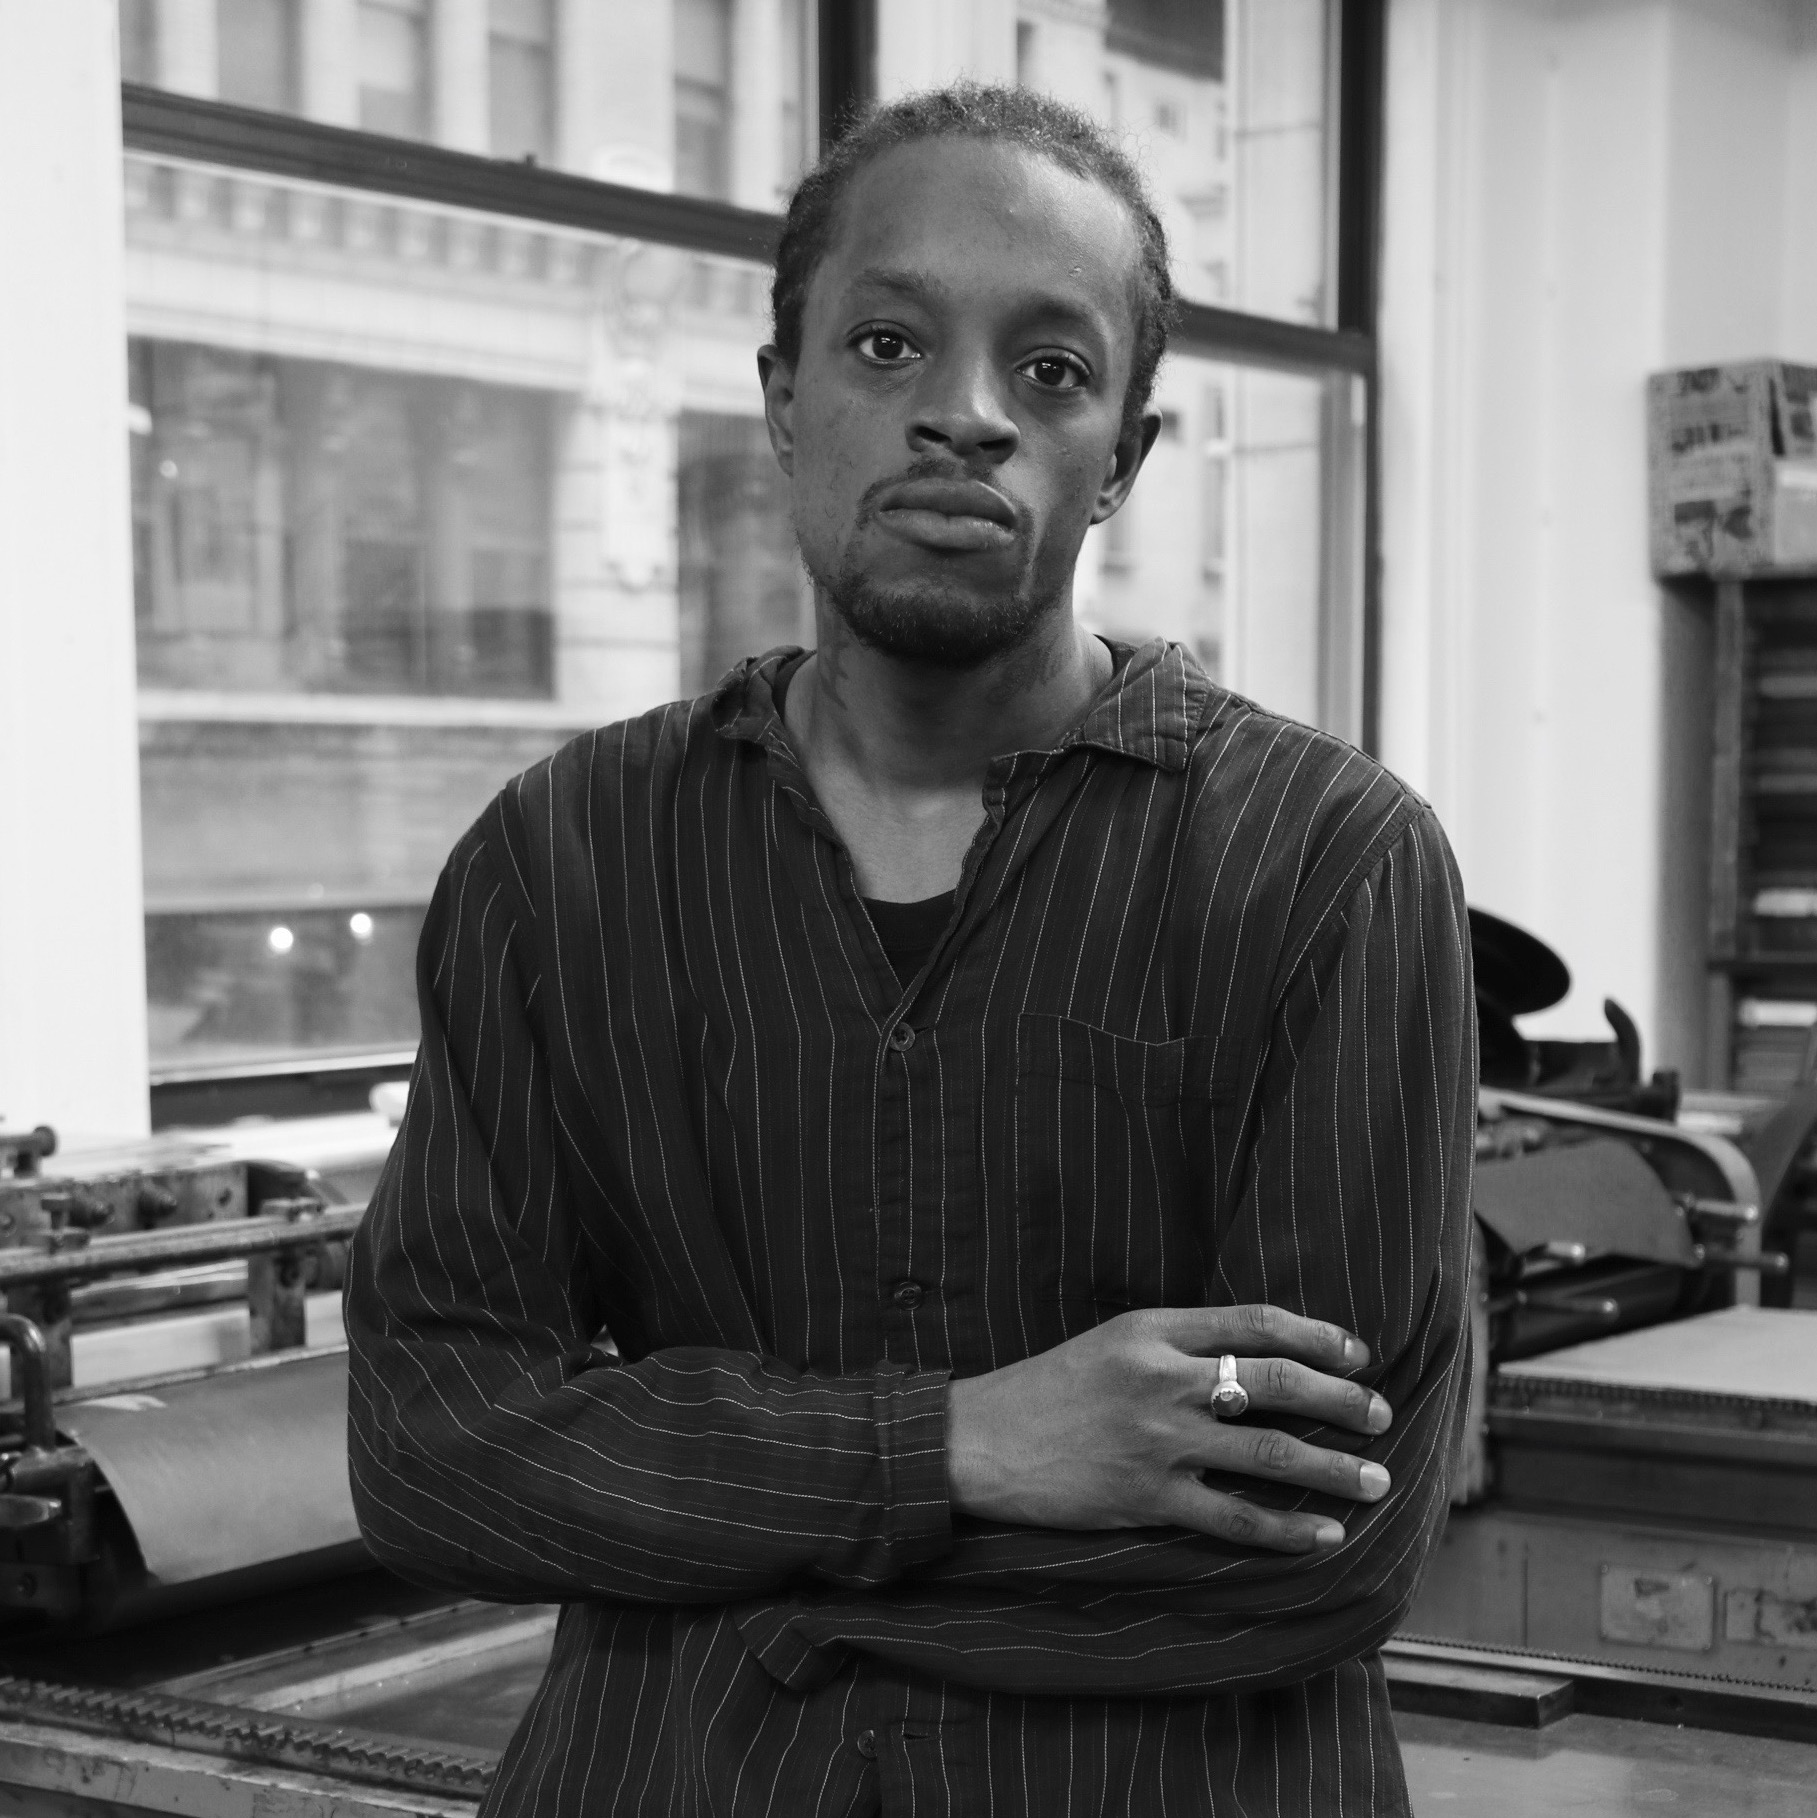 A grayscale photo of a Black man standing with his arms crossed. There is a window behind him.